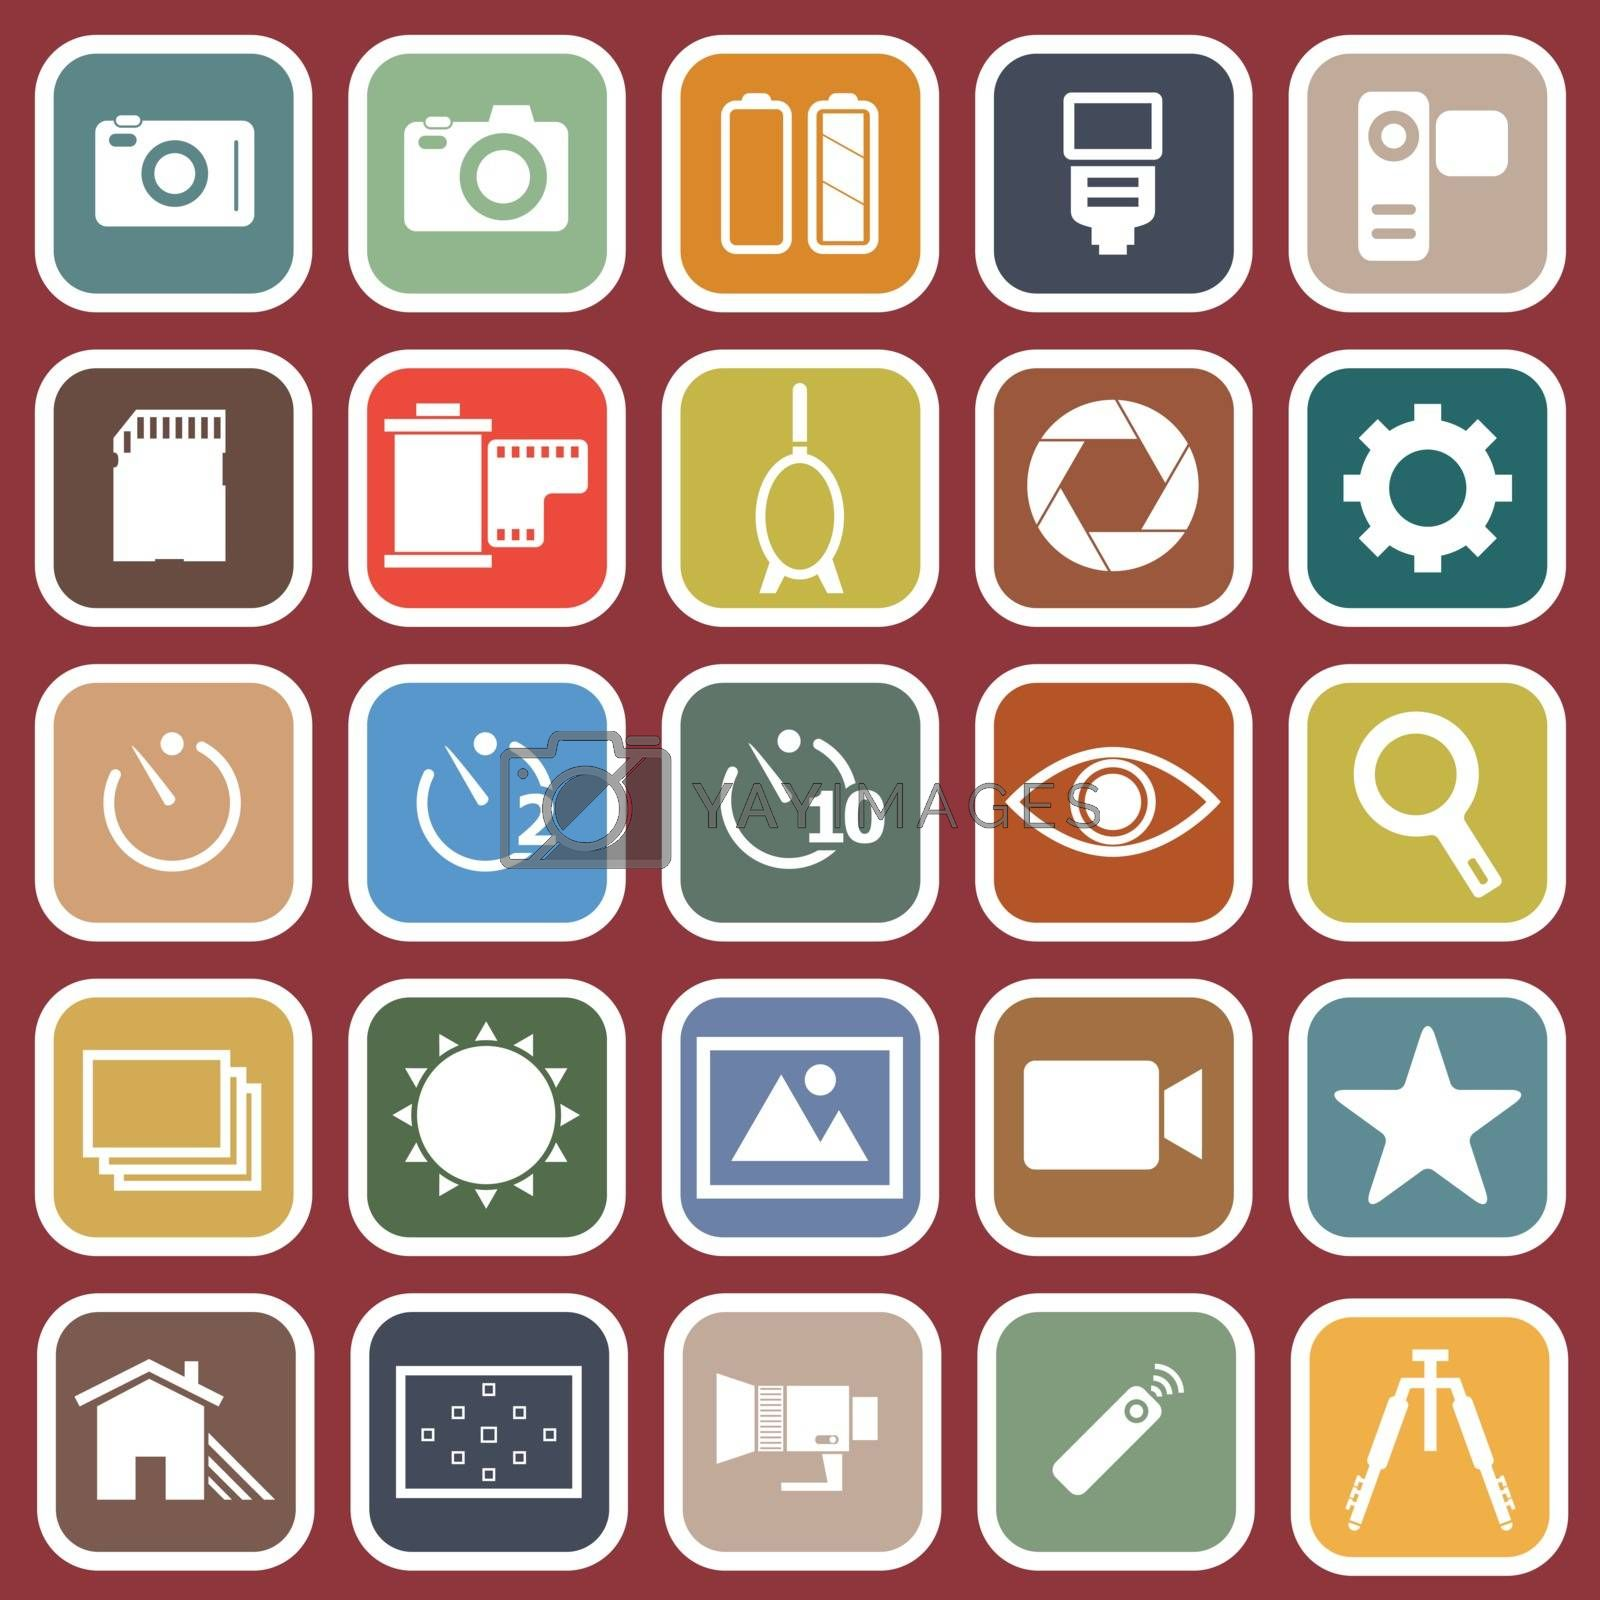 Camera flat icons on red background, stock vector